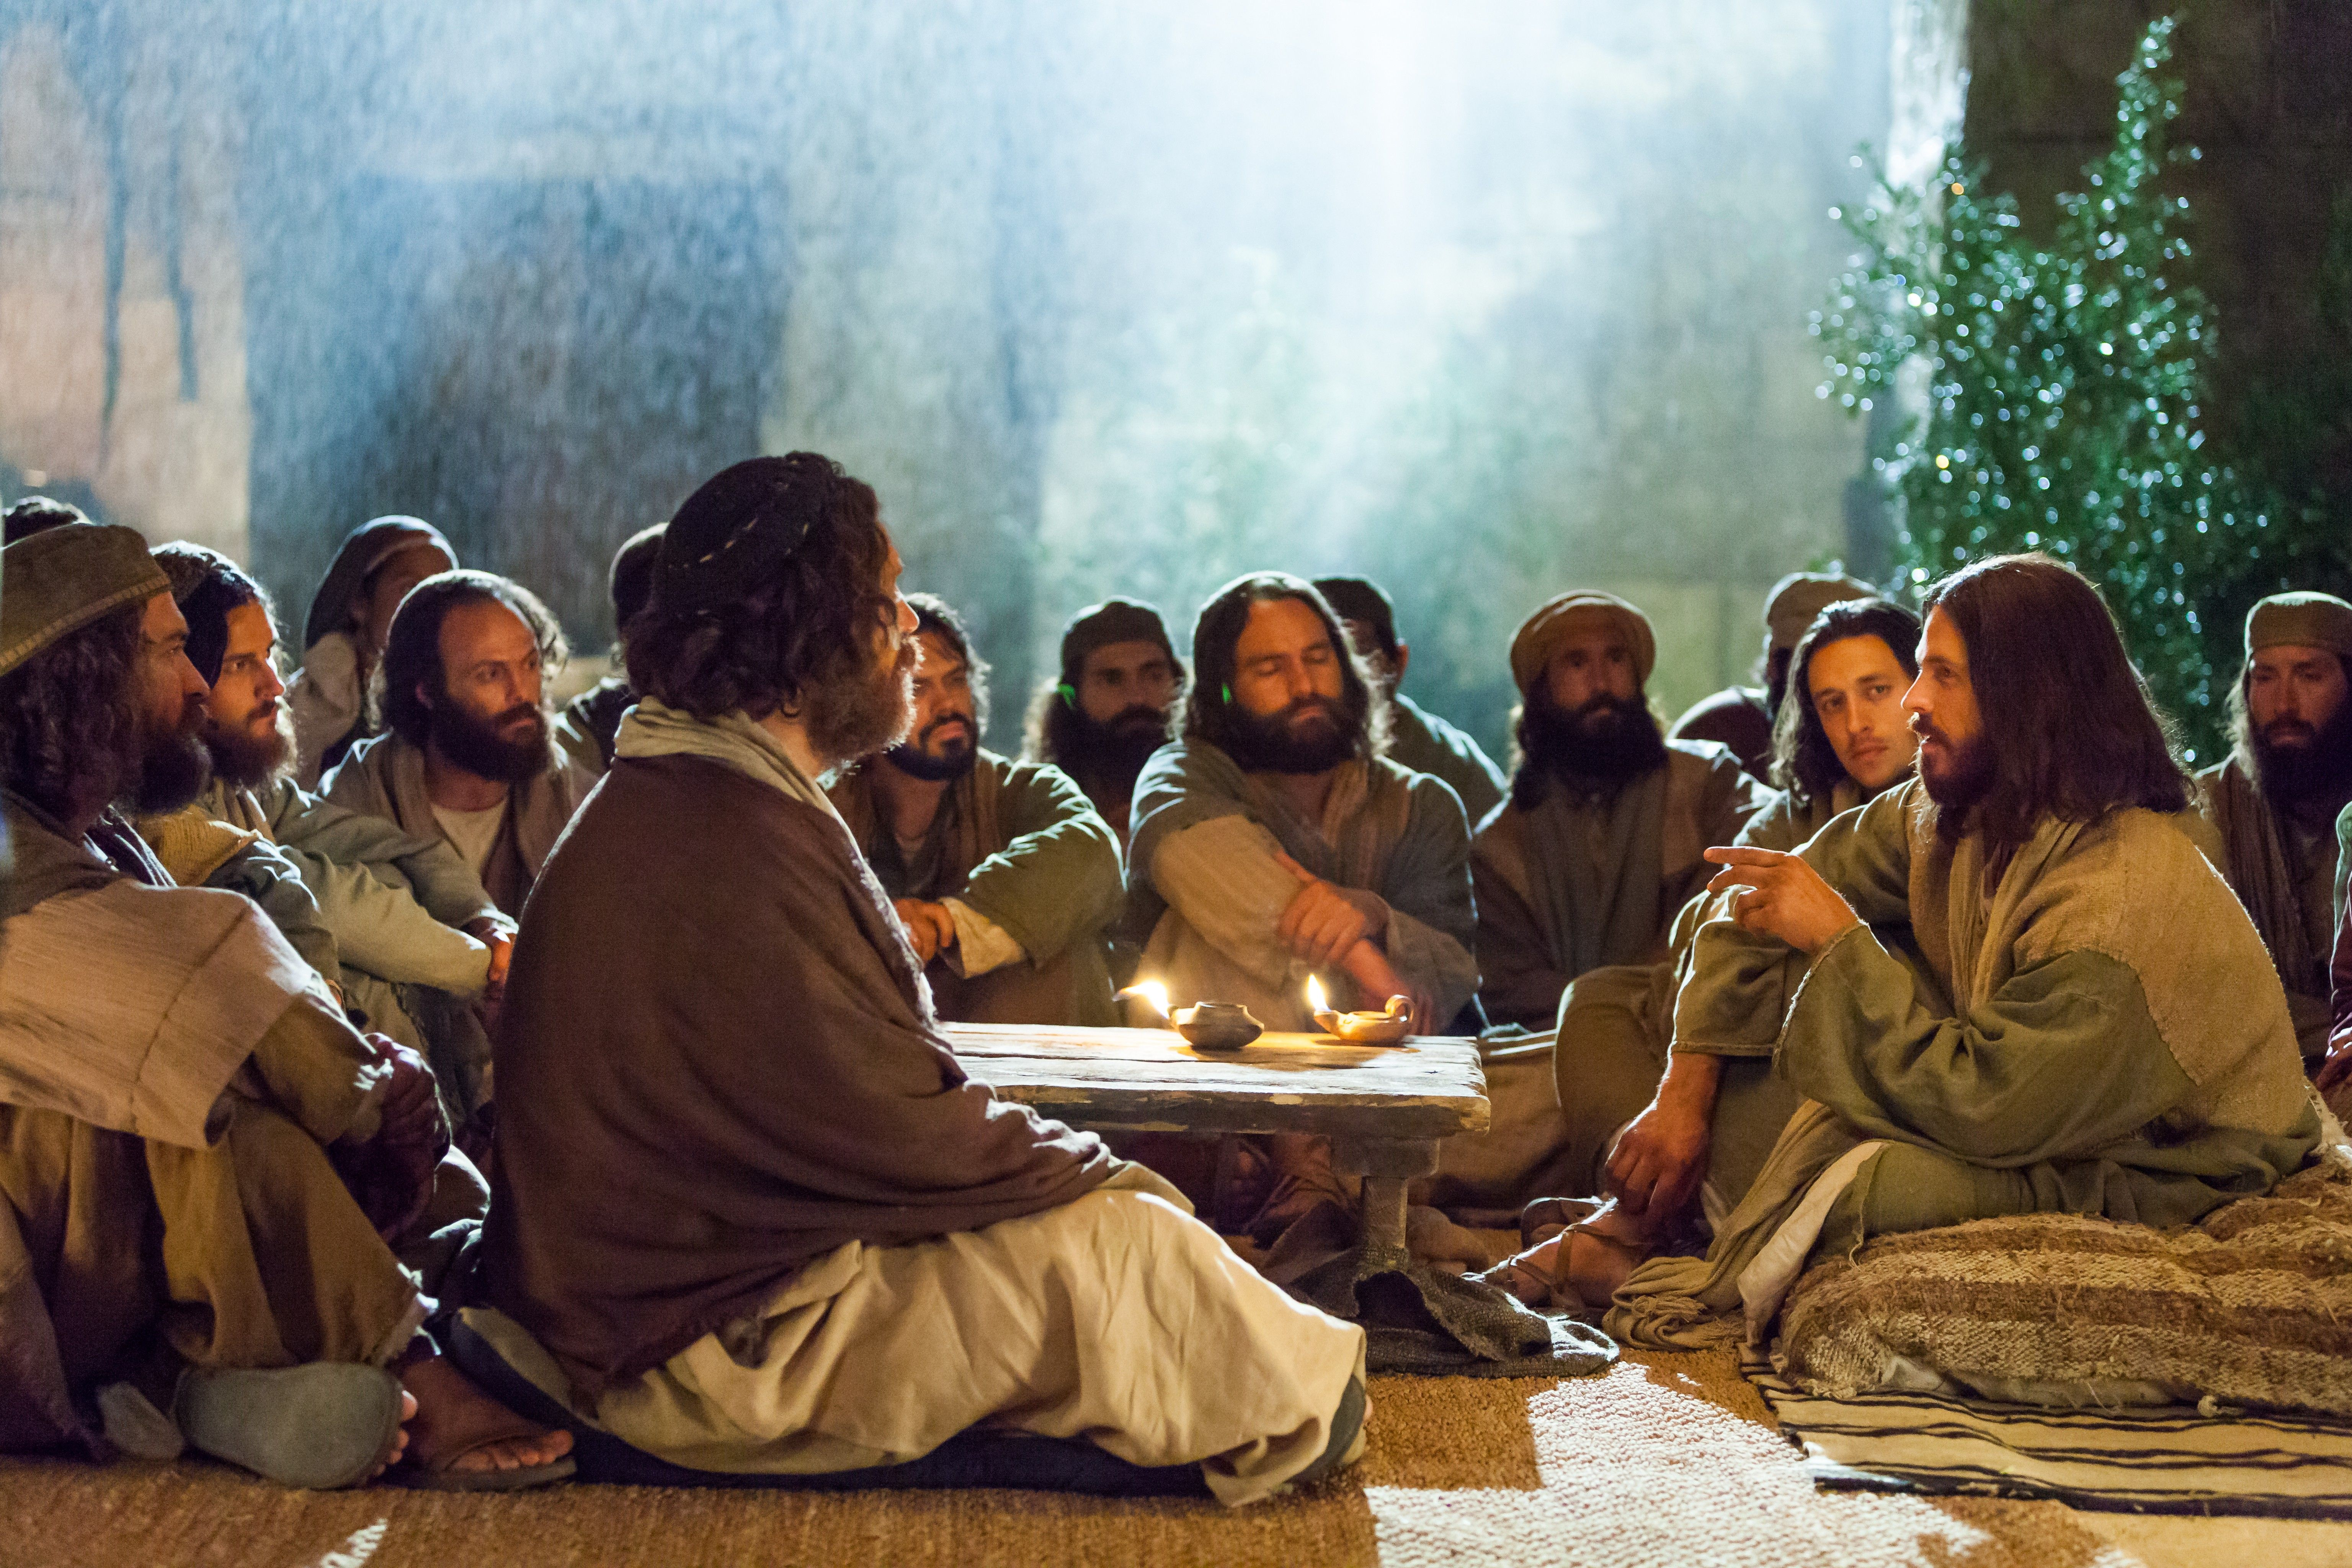 Jesus teaches about the kingdom of heaven.